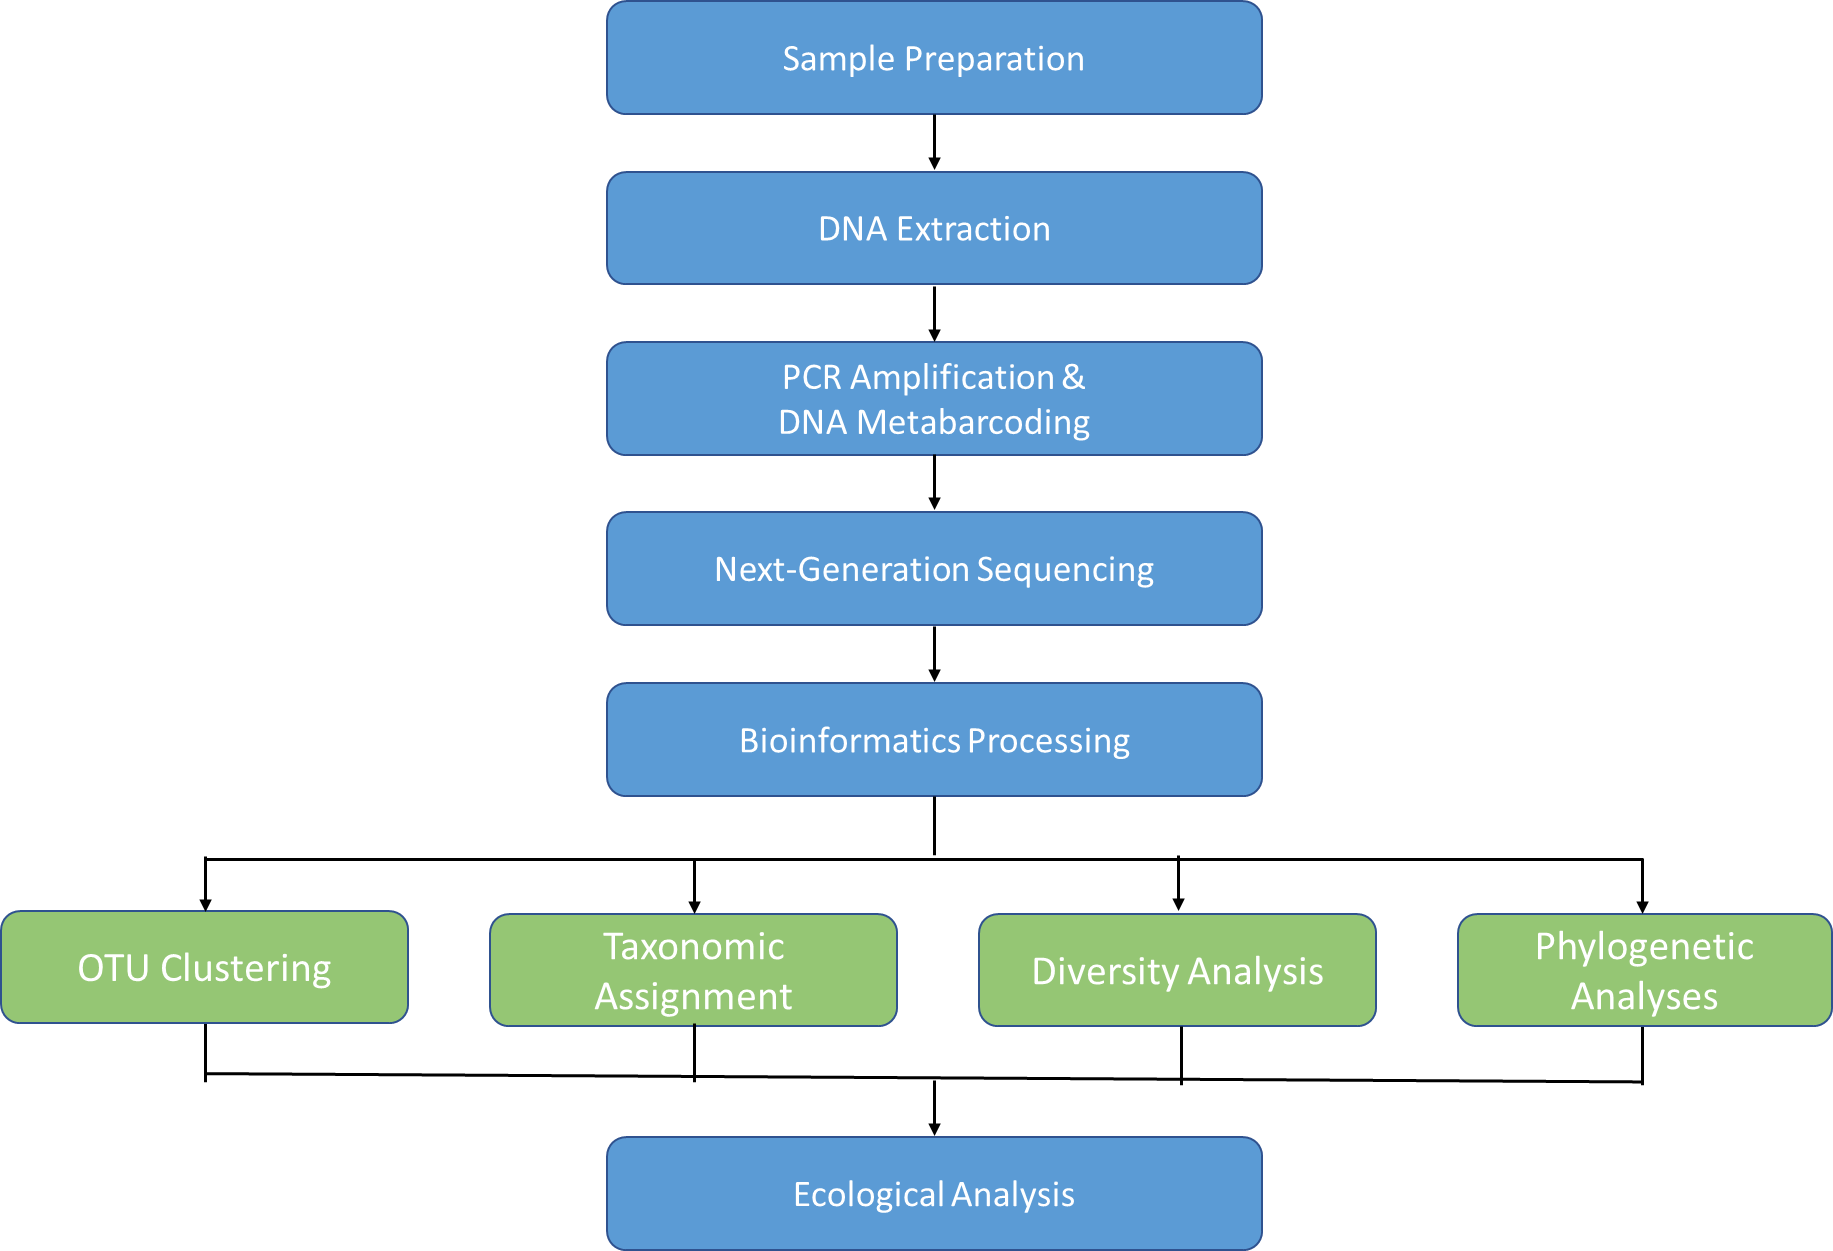 Microbial DNA Metabarcoding Workflow